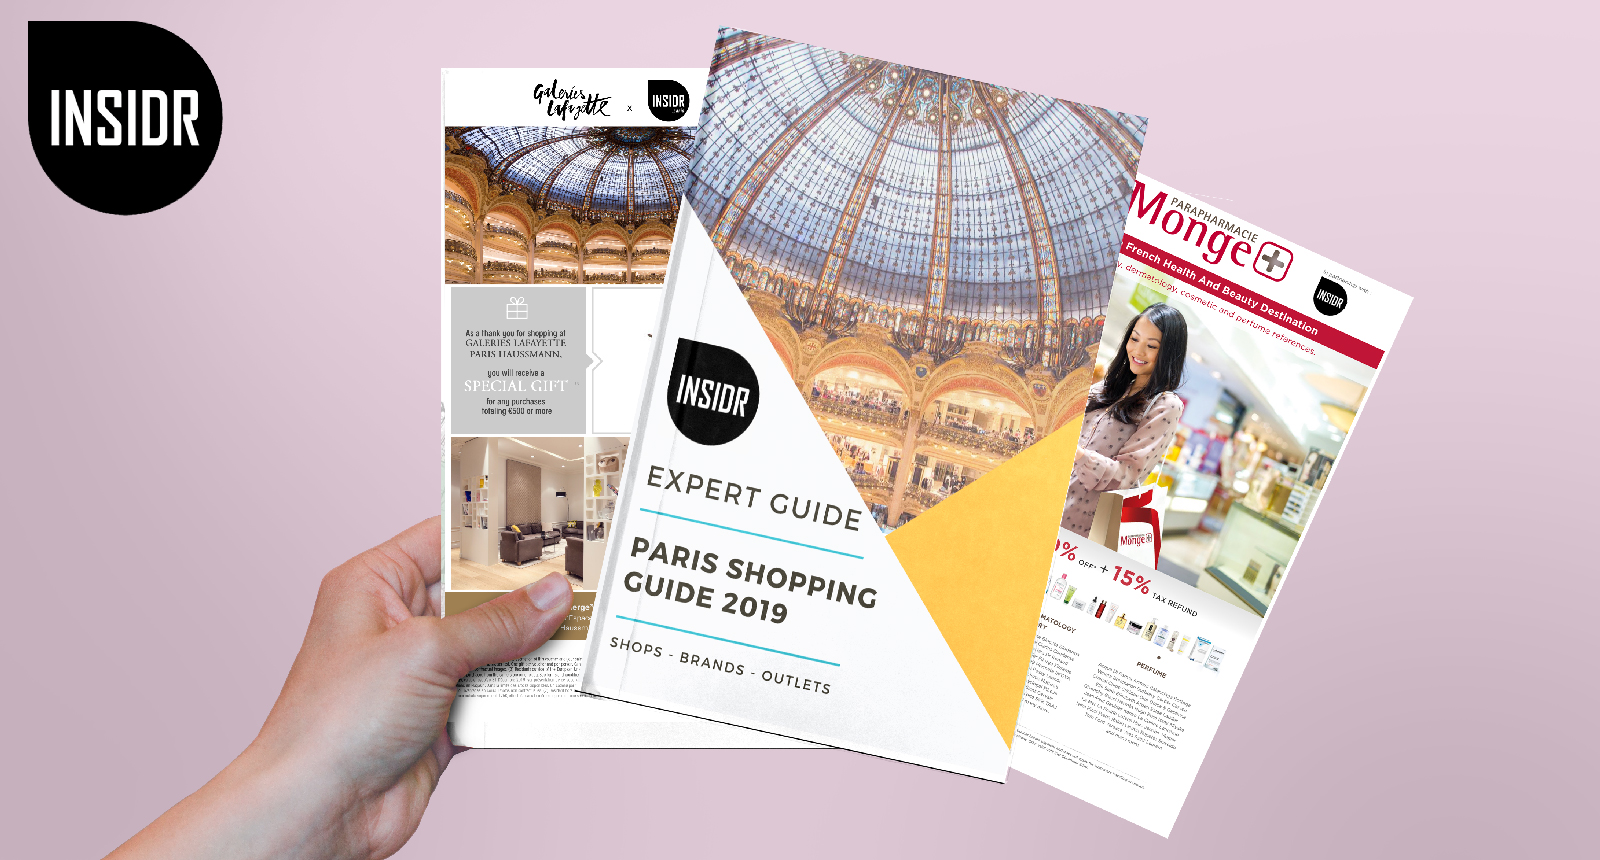 INSIDR Paris Shopping Guide - Budget Tips & Paris Shopping Vouchers